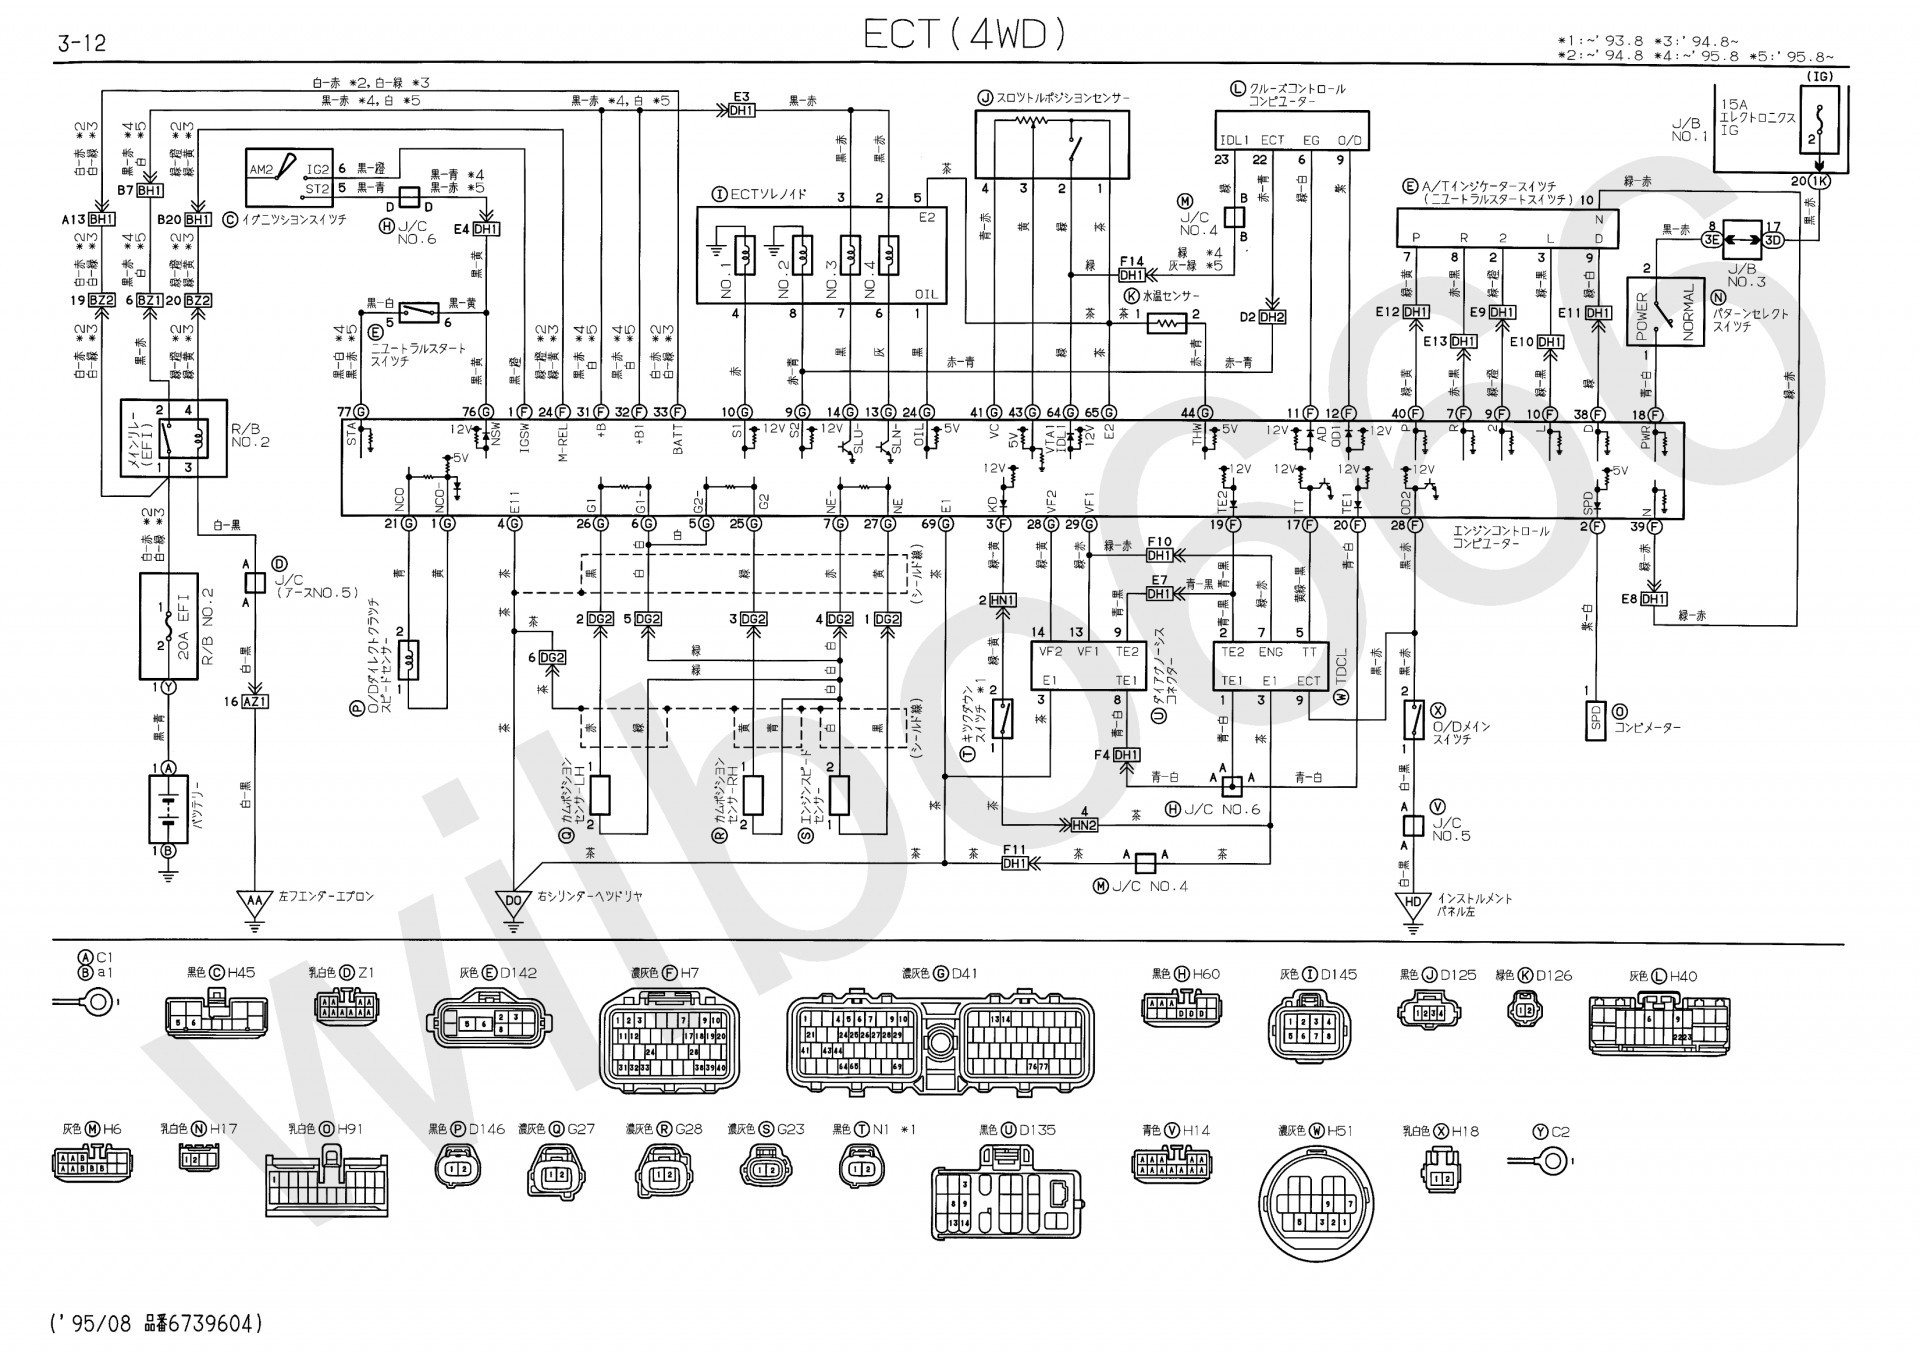 Volkswagen Engine Diagram Vw Jetta Fuse Box 1 2014 Mustang Wiring Of